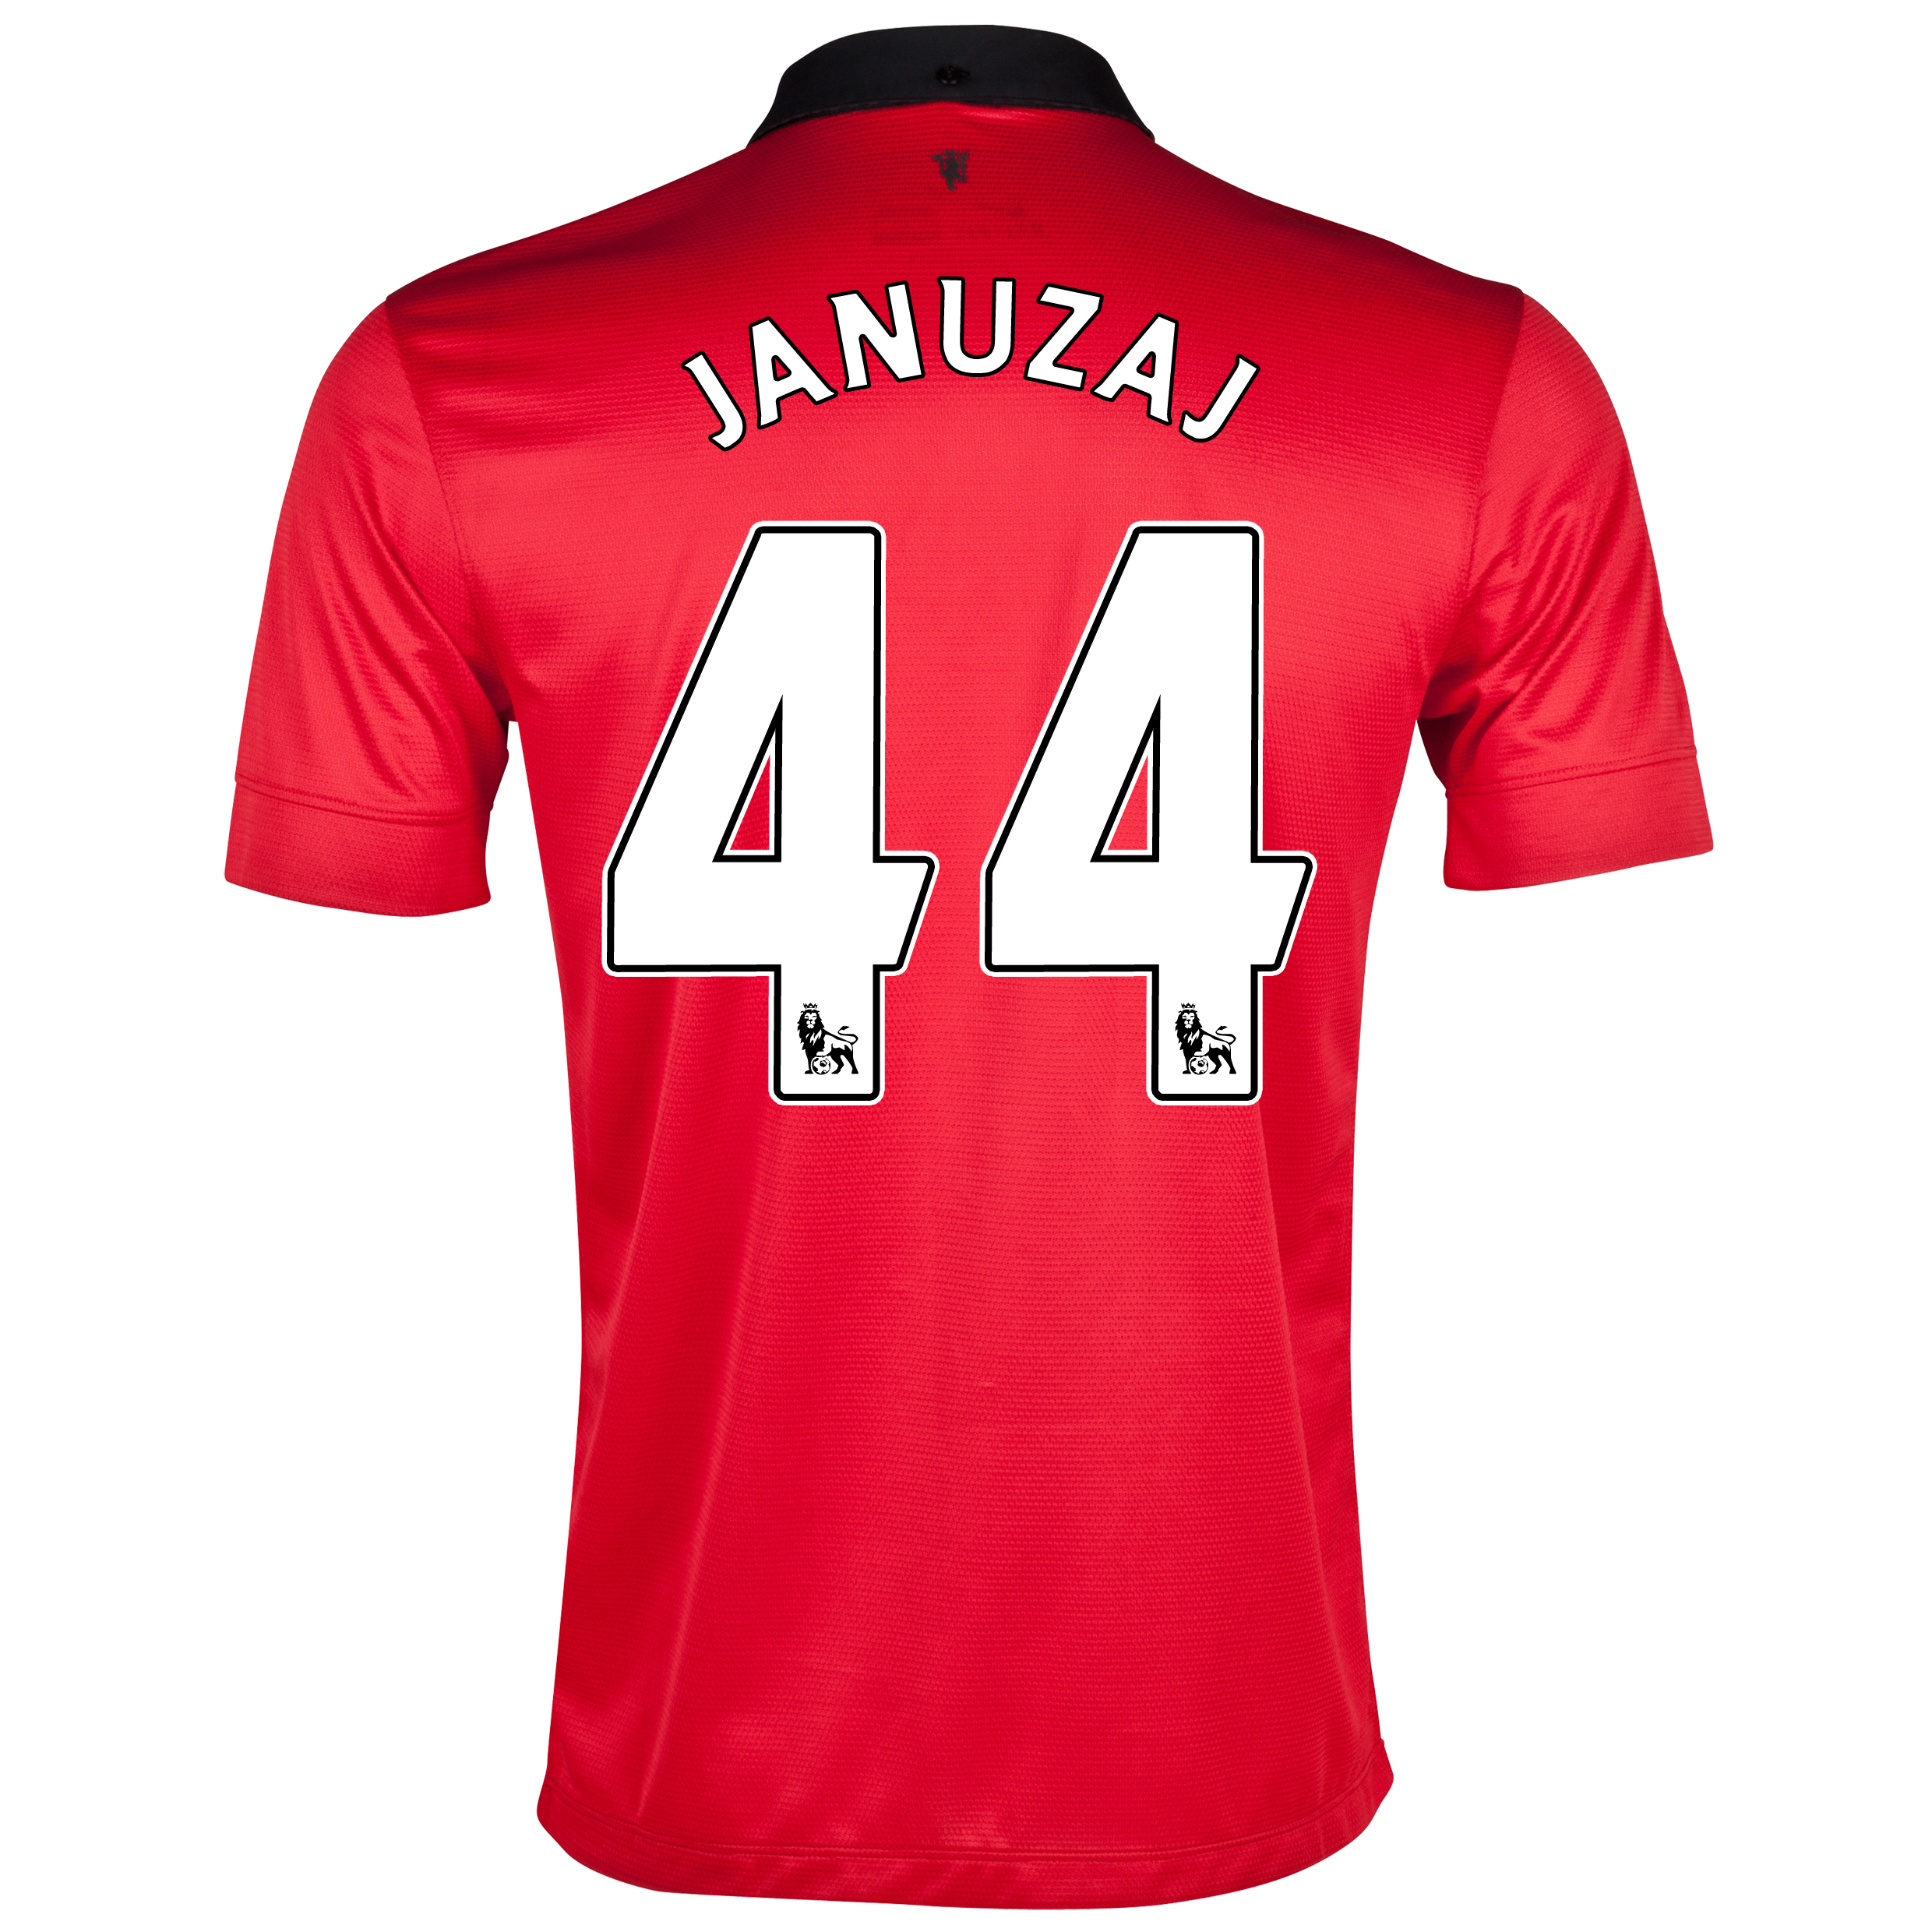 Manchester United Home Shirt 2013/14 - Kids with Januzaj 44 printing